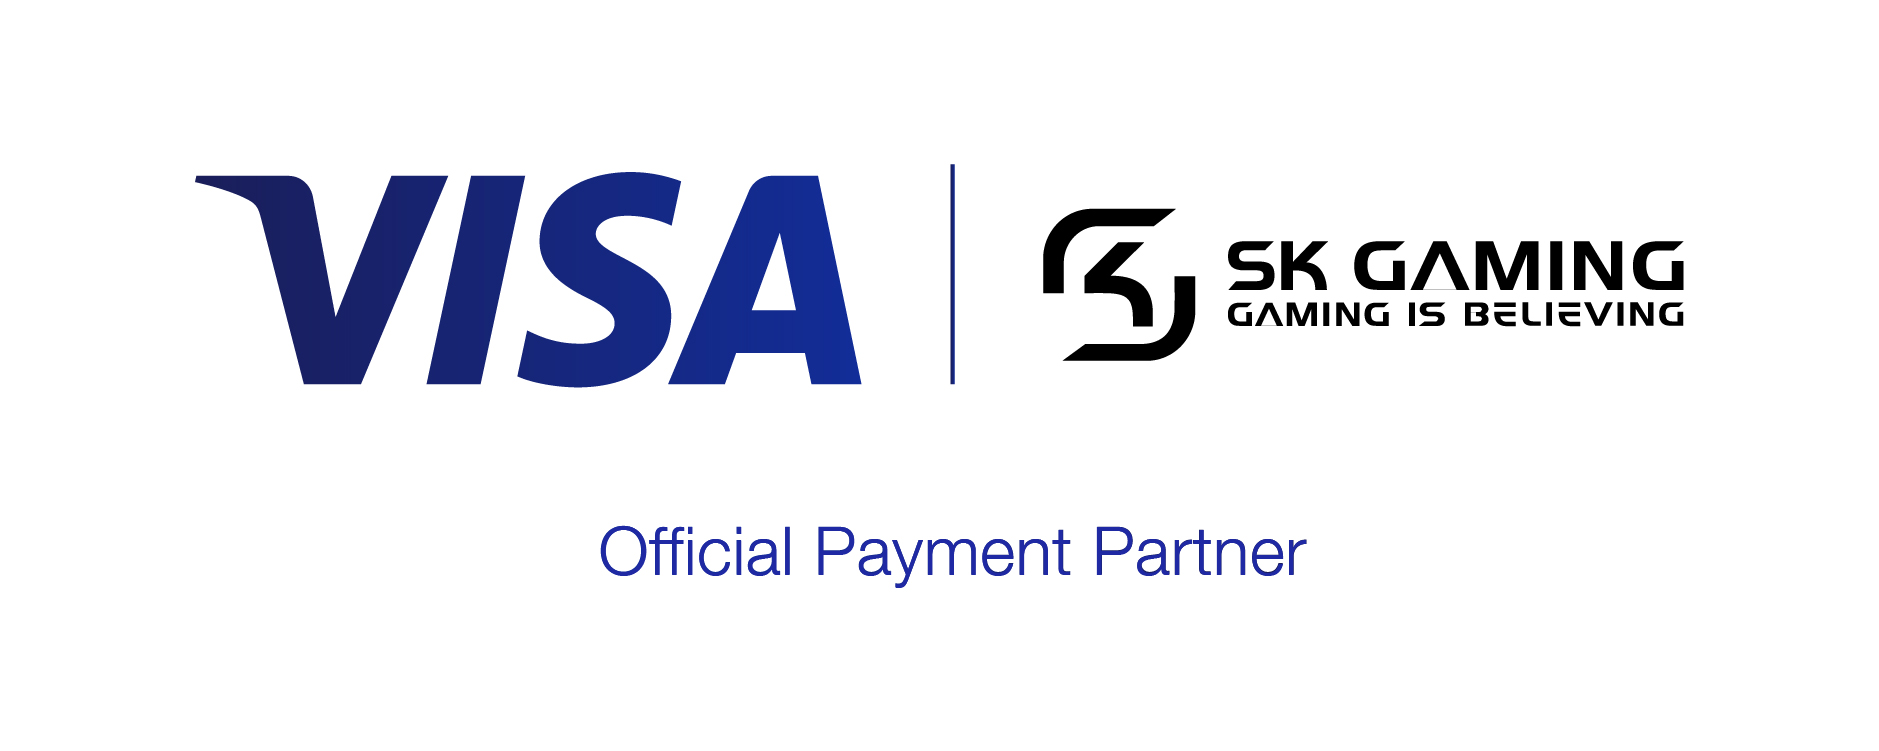 Visa Sponsors eSports Team SK Gaming (Photo: SK Gaming)